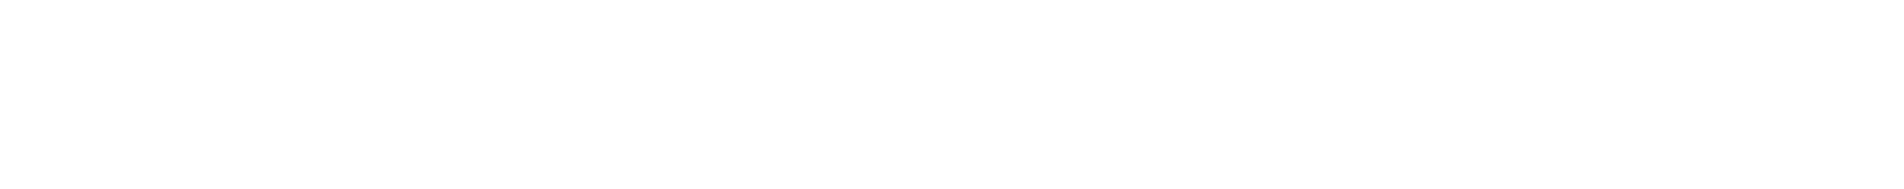 logo of London Strategy Public Relations Agency Curzon PR